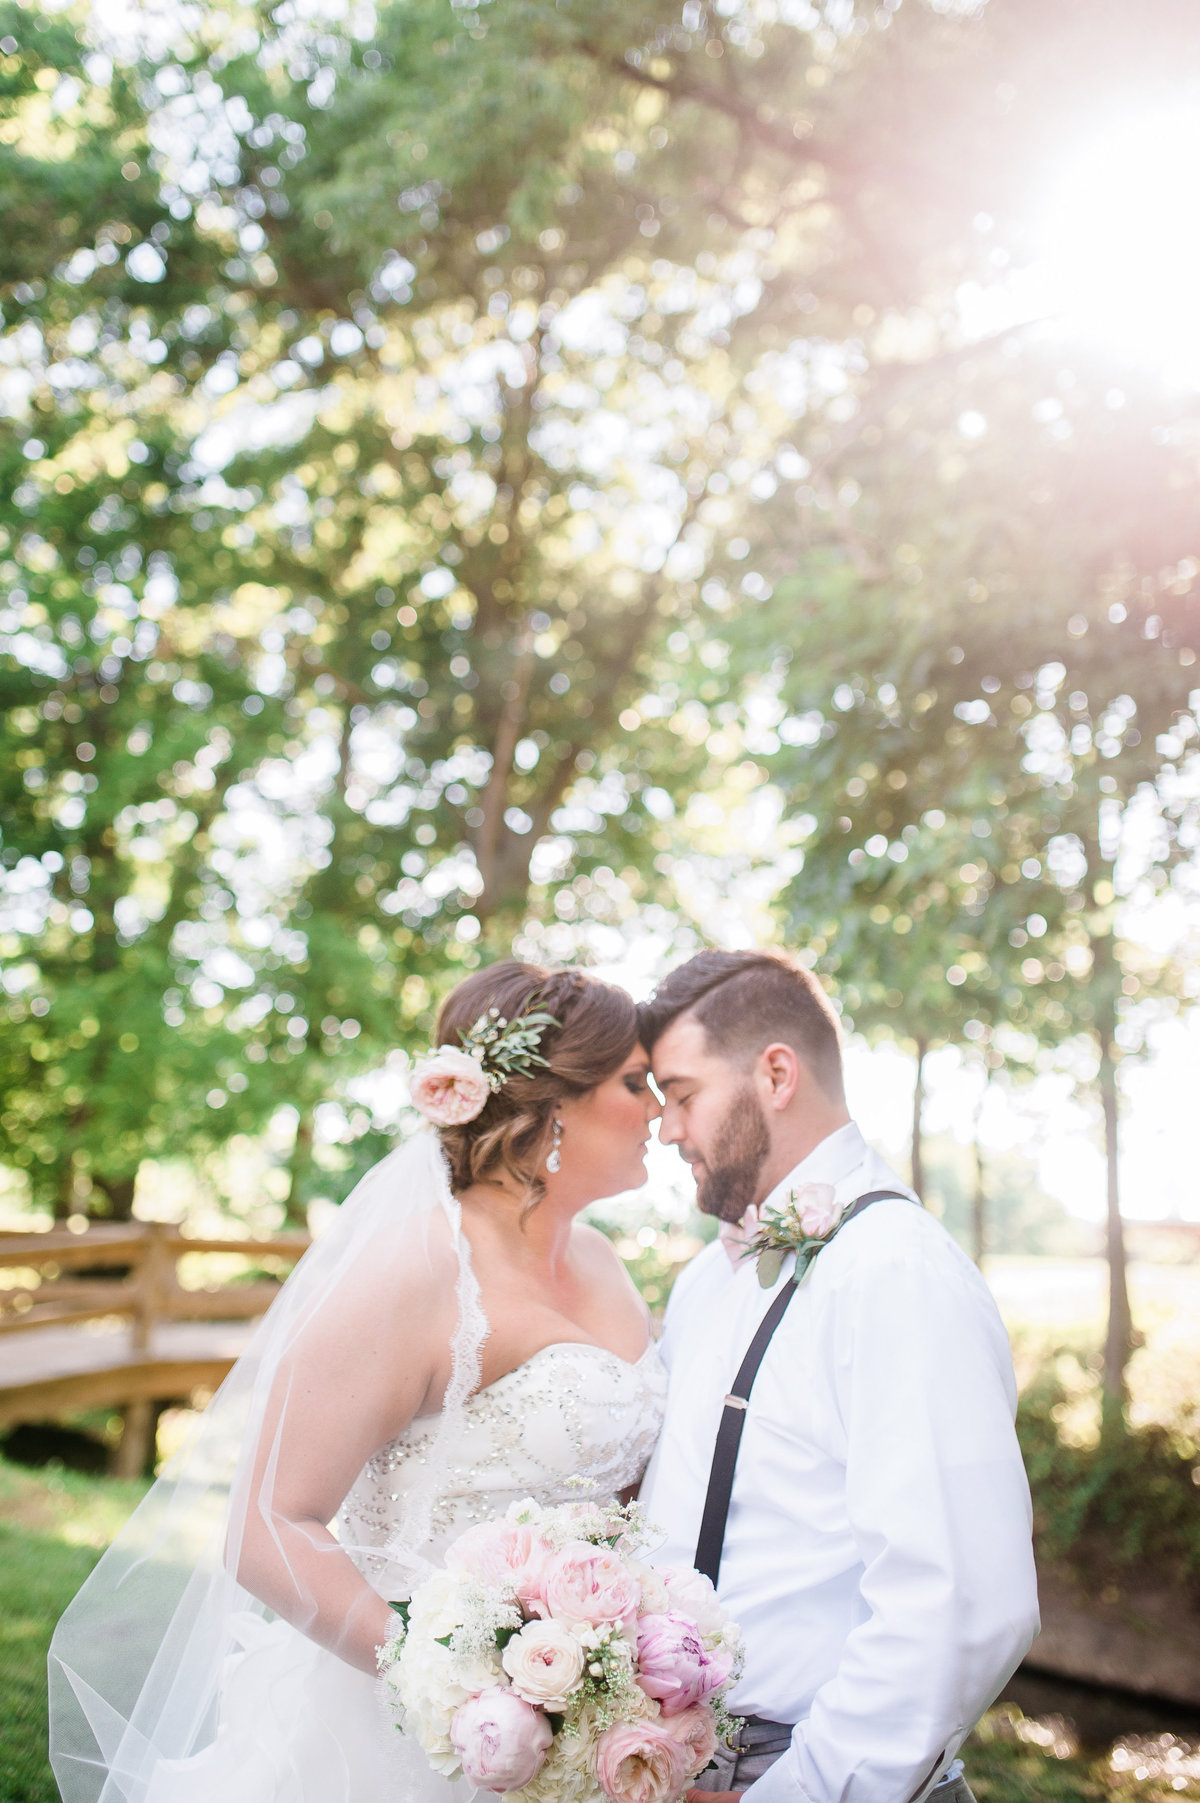 Bentonville Wedding Photographer, Fayetteville Wedding Photography, Northwest Arkansas Wedding Photographer, Arkansas Wedding, northwest Arkansas wedding, NWA Wedding-64